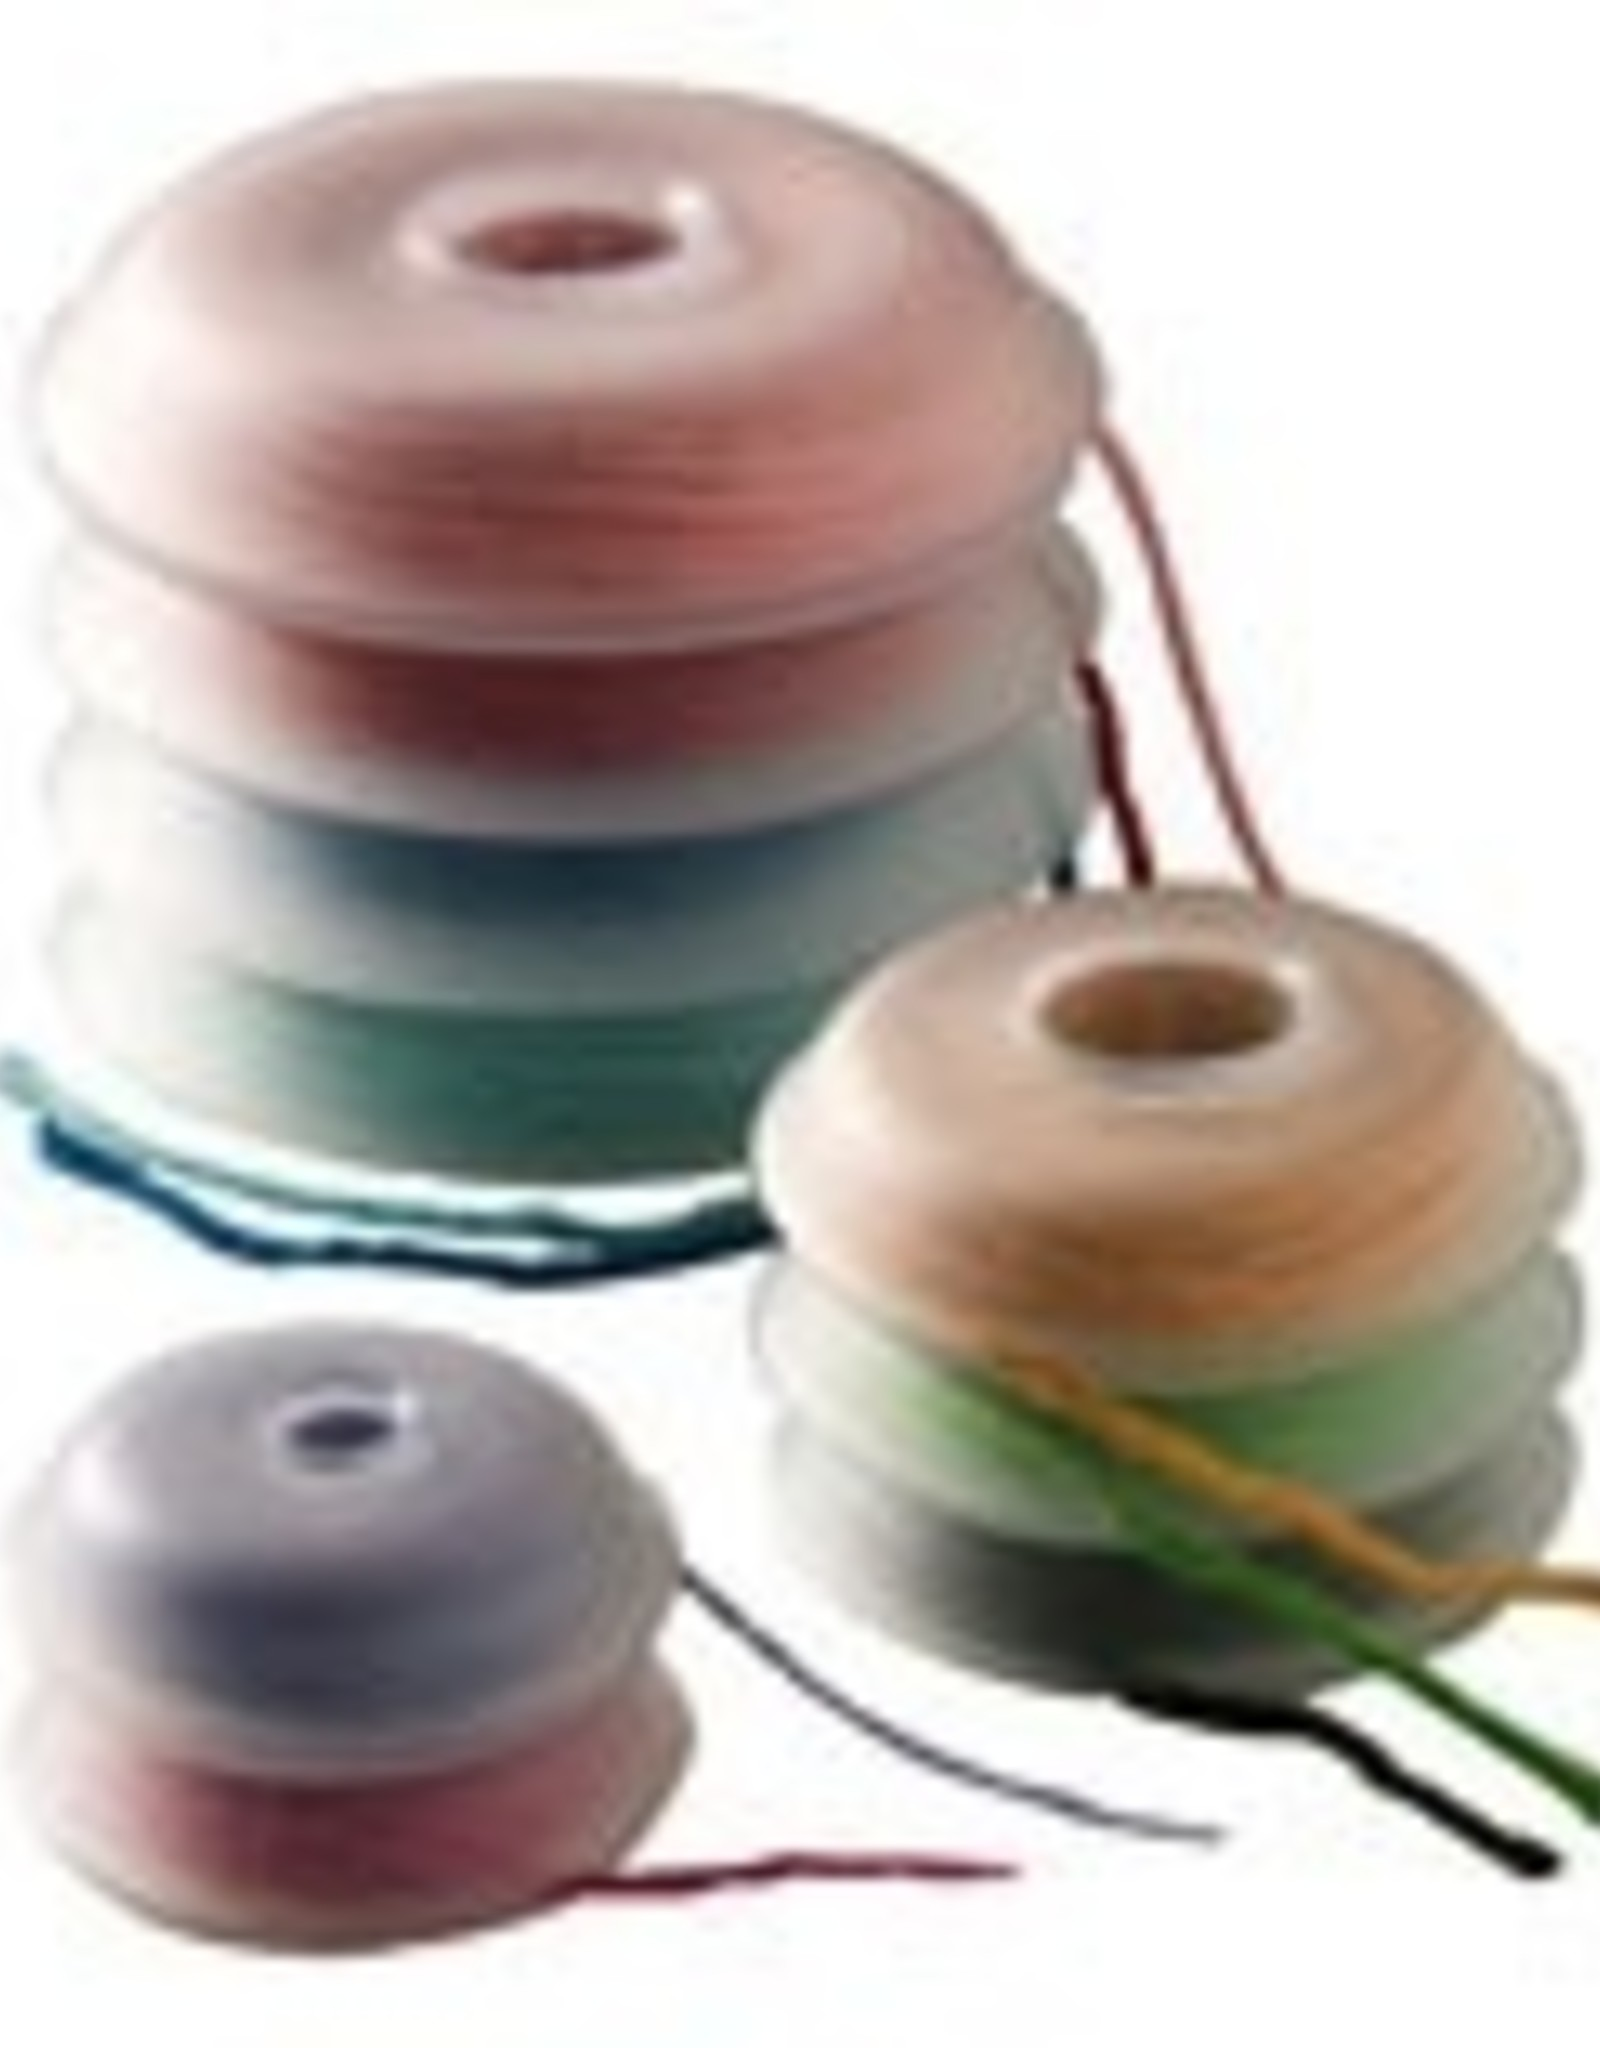 "Knitpicks Knitting Yarn Bobbins, Small - 2"" diameter, set of 6"